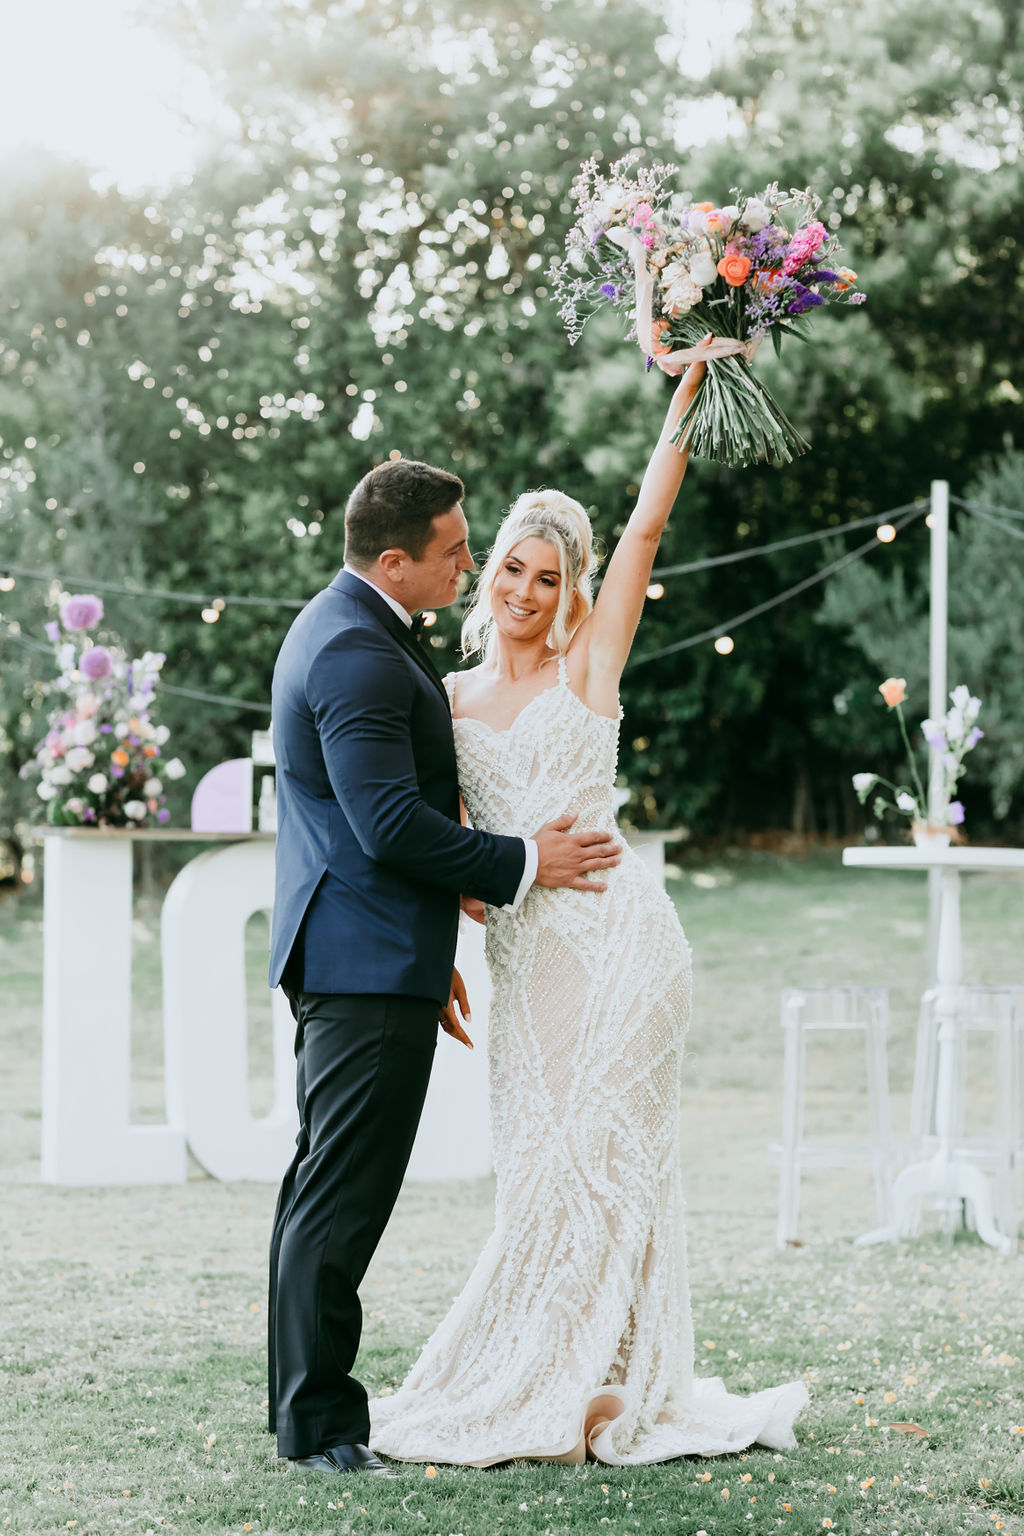 images by lady bella photography gold coast weddings florals bridal gowns venue